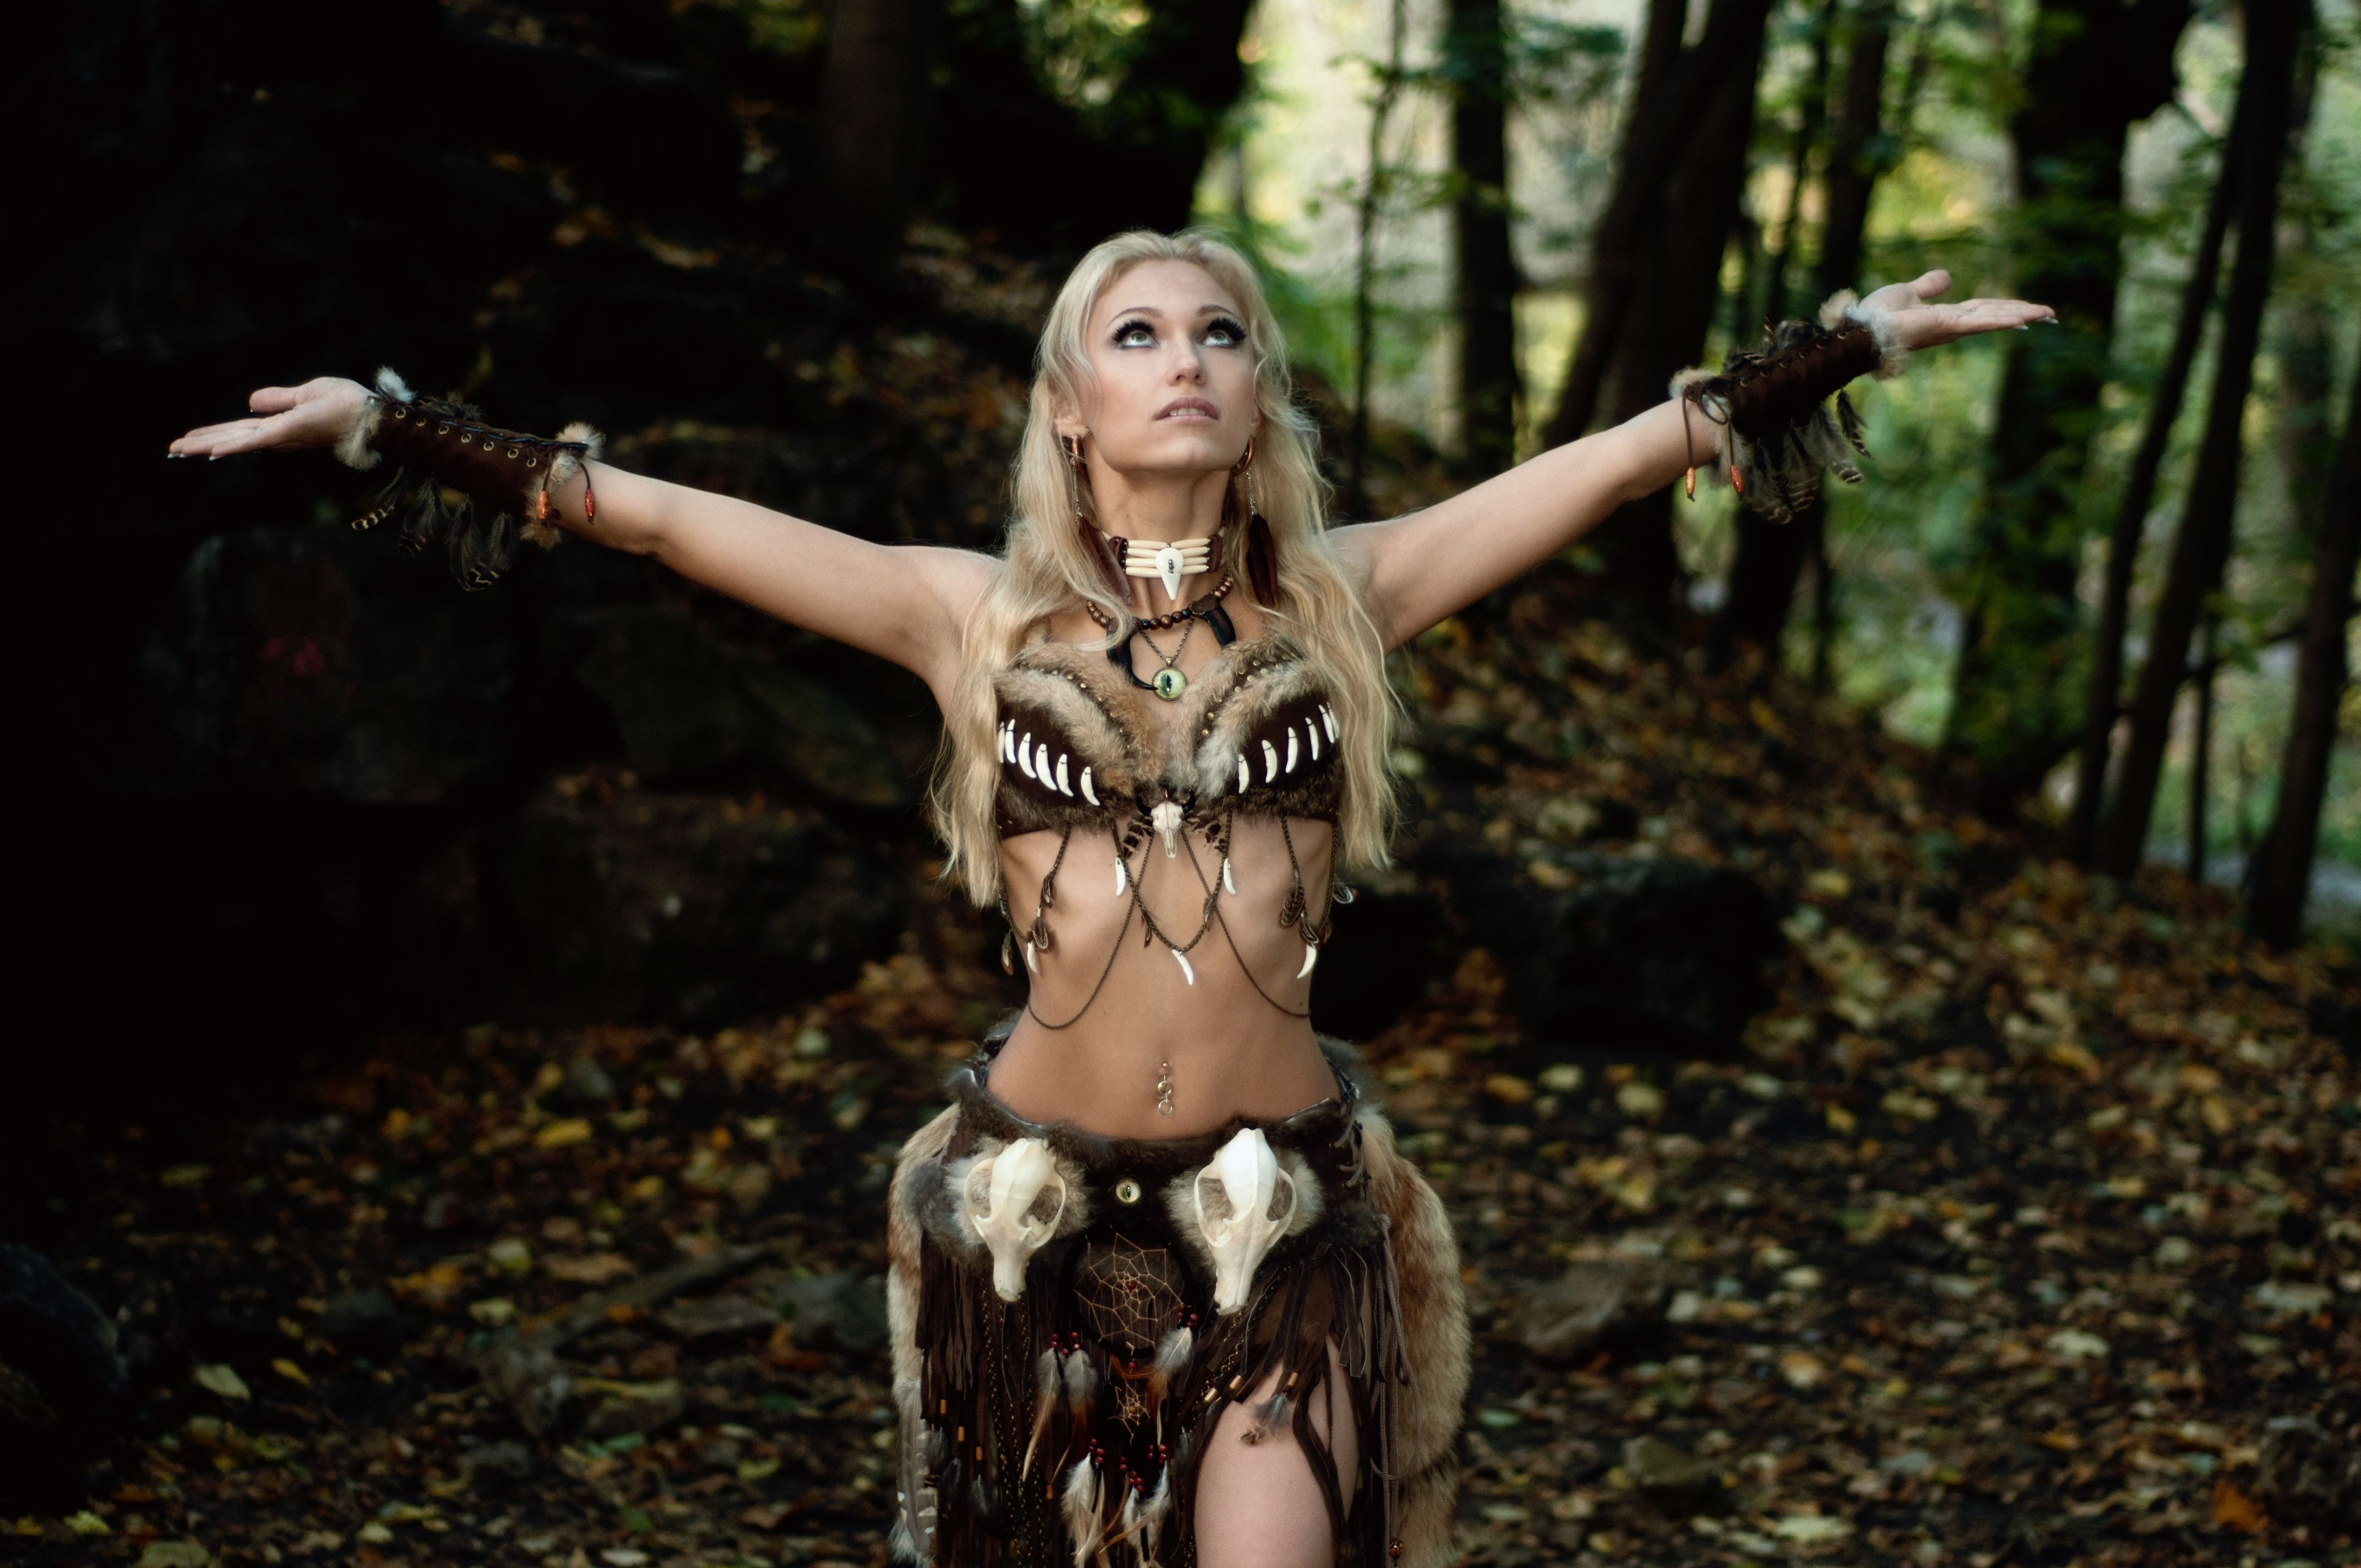 Warrior Cave Woman Larp Fantasy Cosplay Other